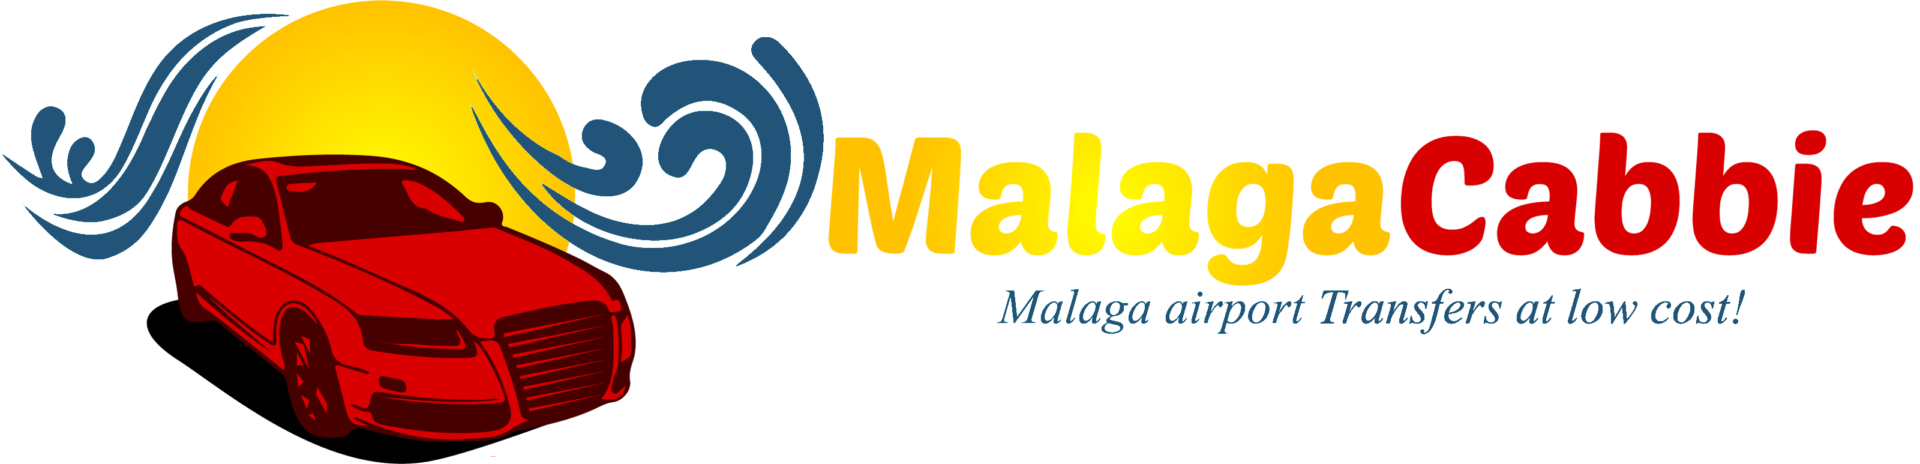 Malaga Cabbie | Book your transfers from Malaga airport with Malaga Cabbie